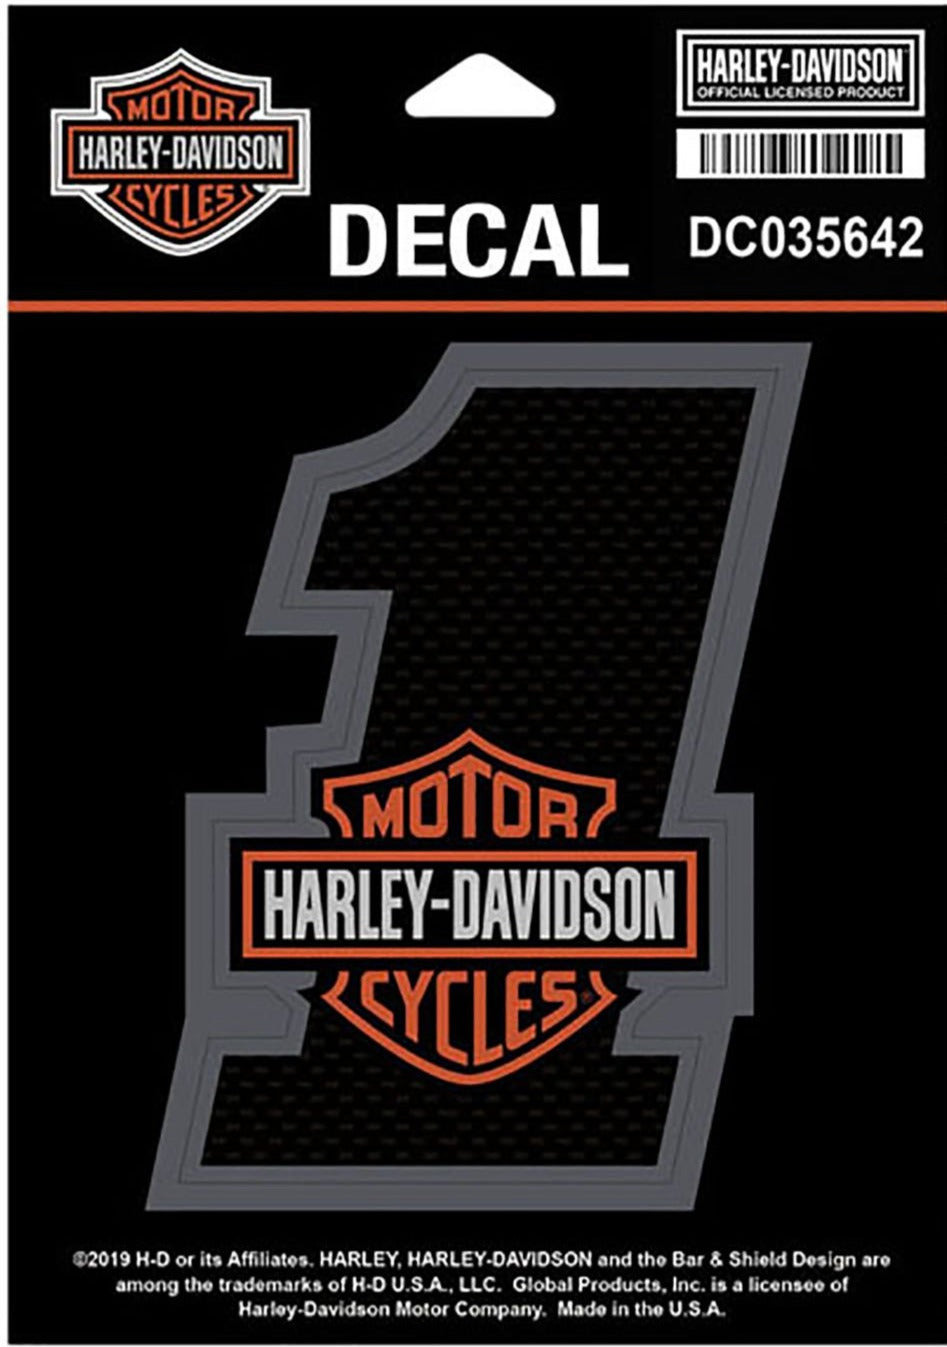 Harley-Davidson® #1 Bar & Shield Decal, Small Size - 3.25 x 4.25 inches - DC035642